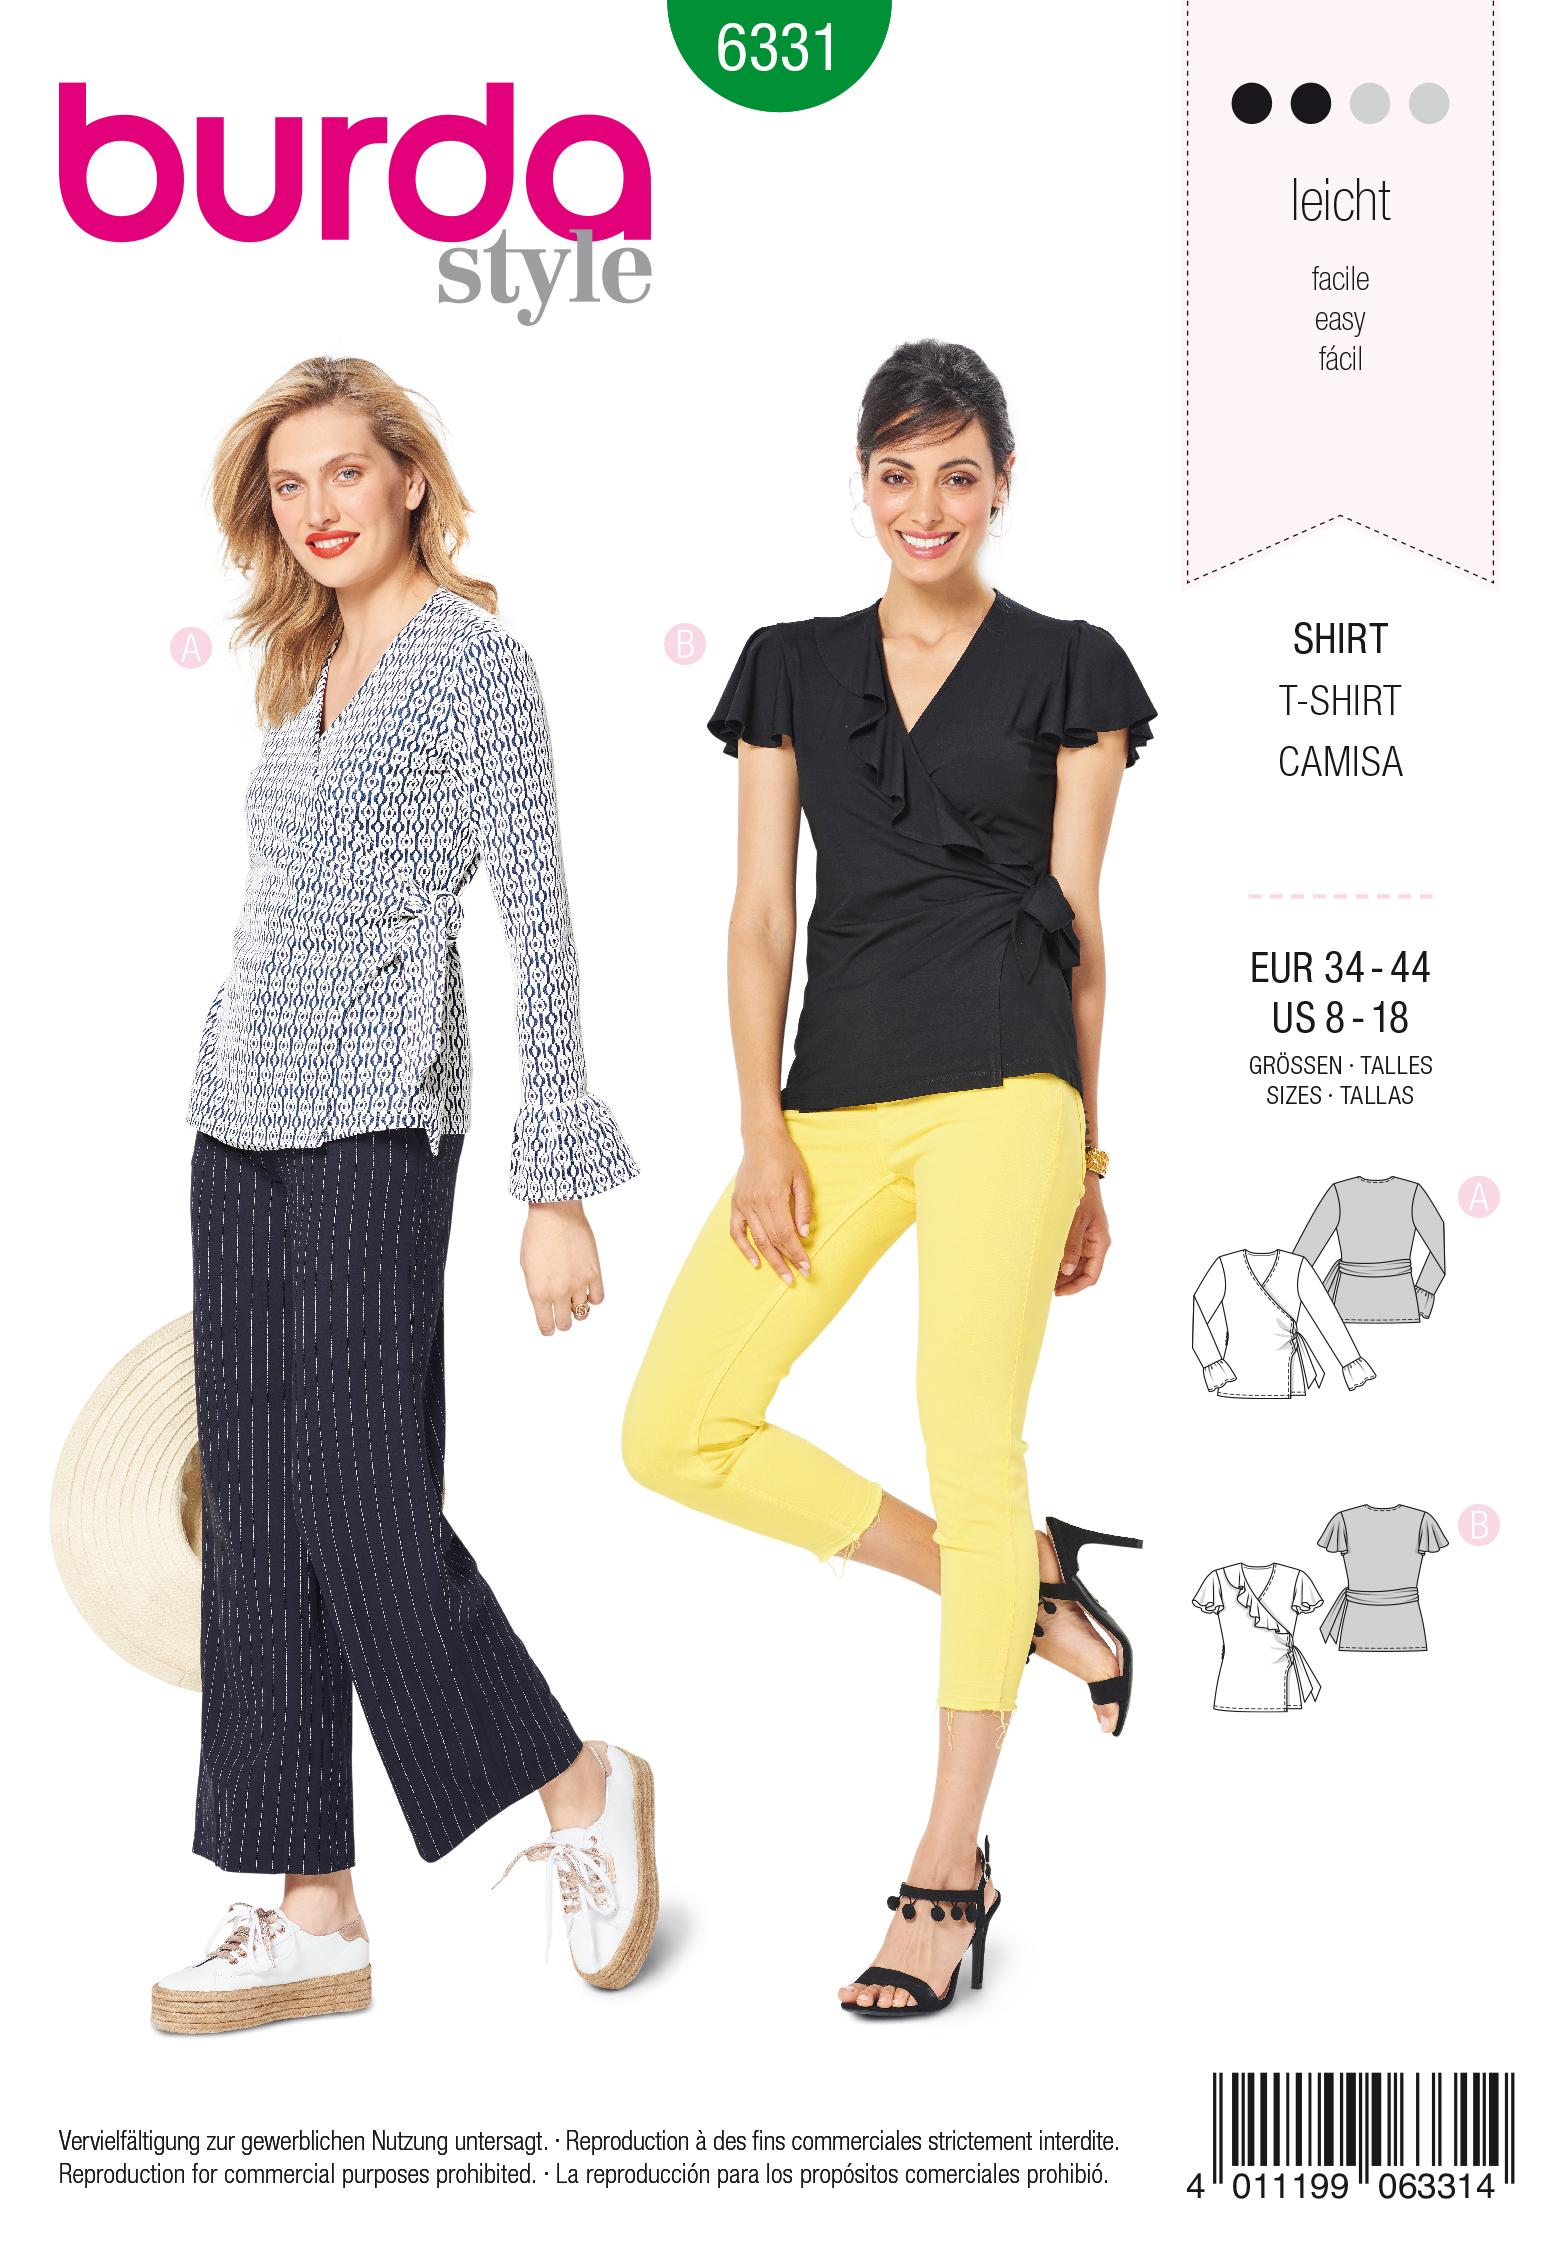 Burda 6331 Misses' wrap top